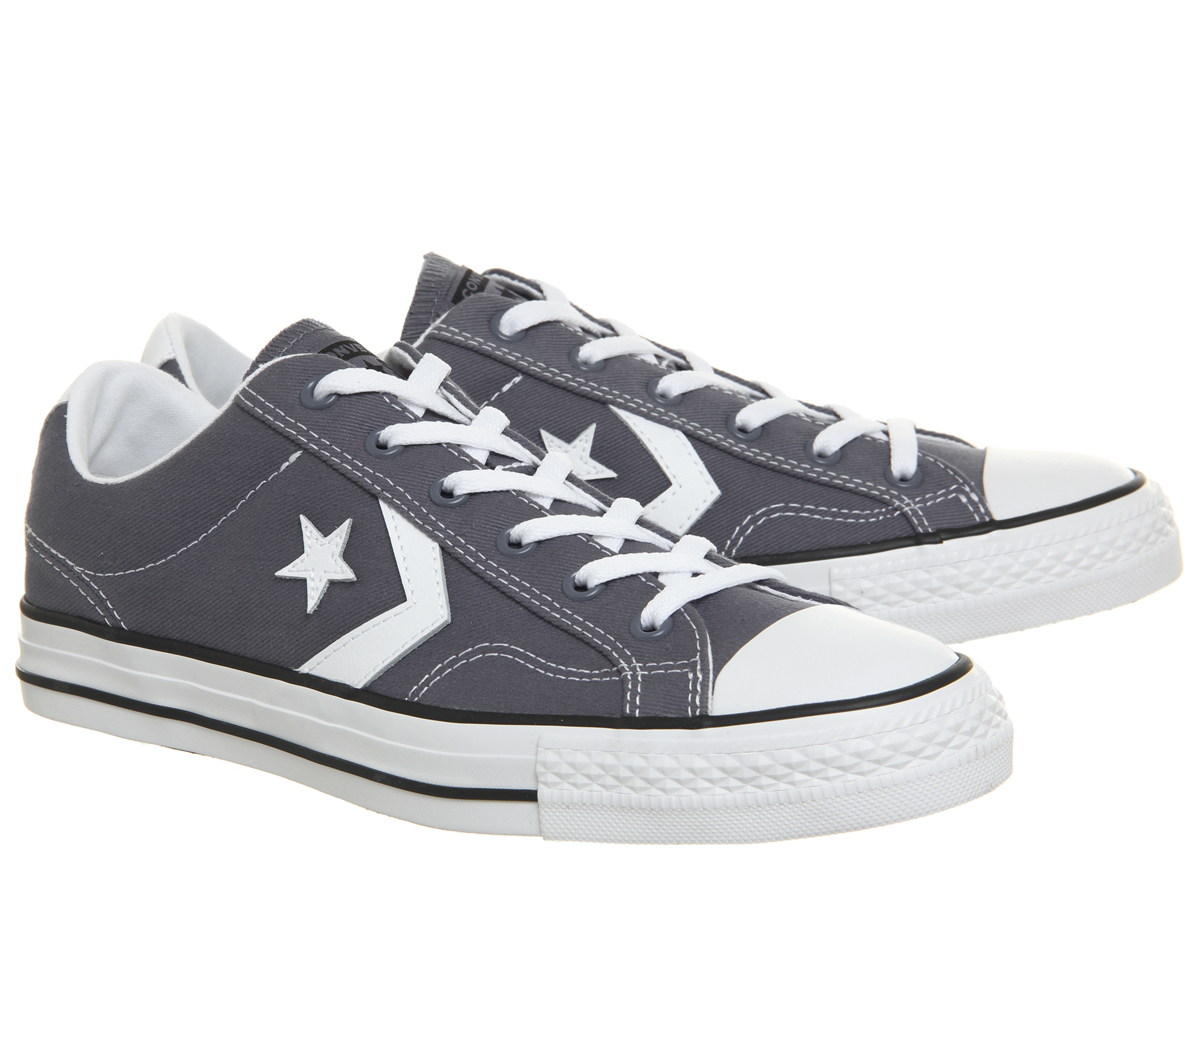 c00d7011224 Converse Star Player Ox Trainers LIGHT CARBON WHITE Trainers Shoes ...